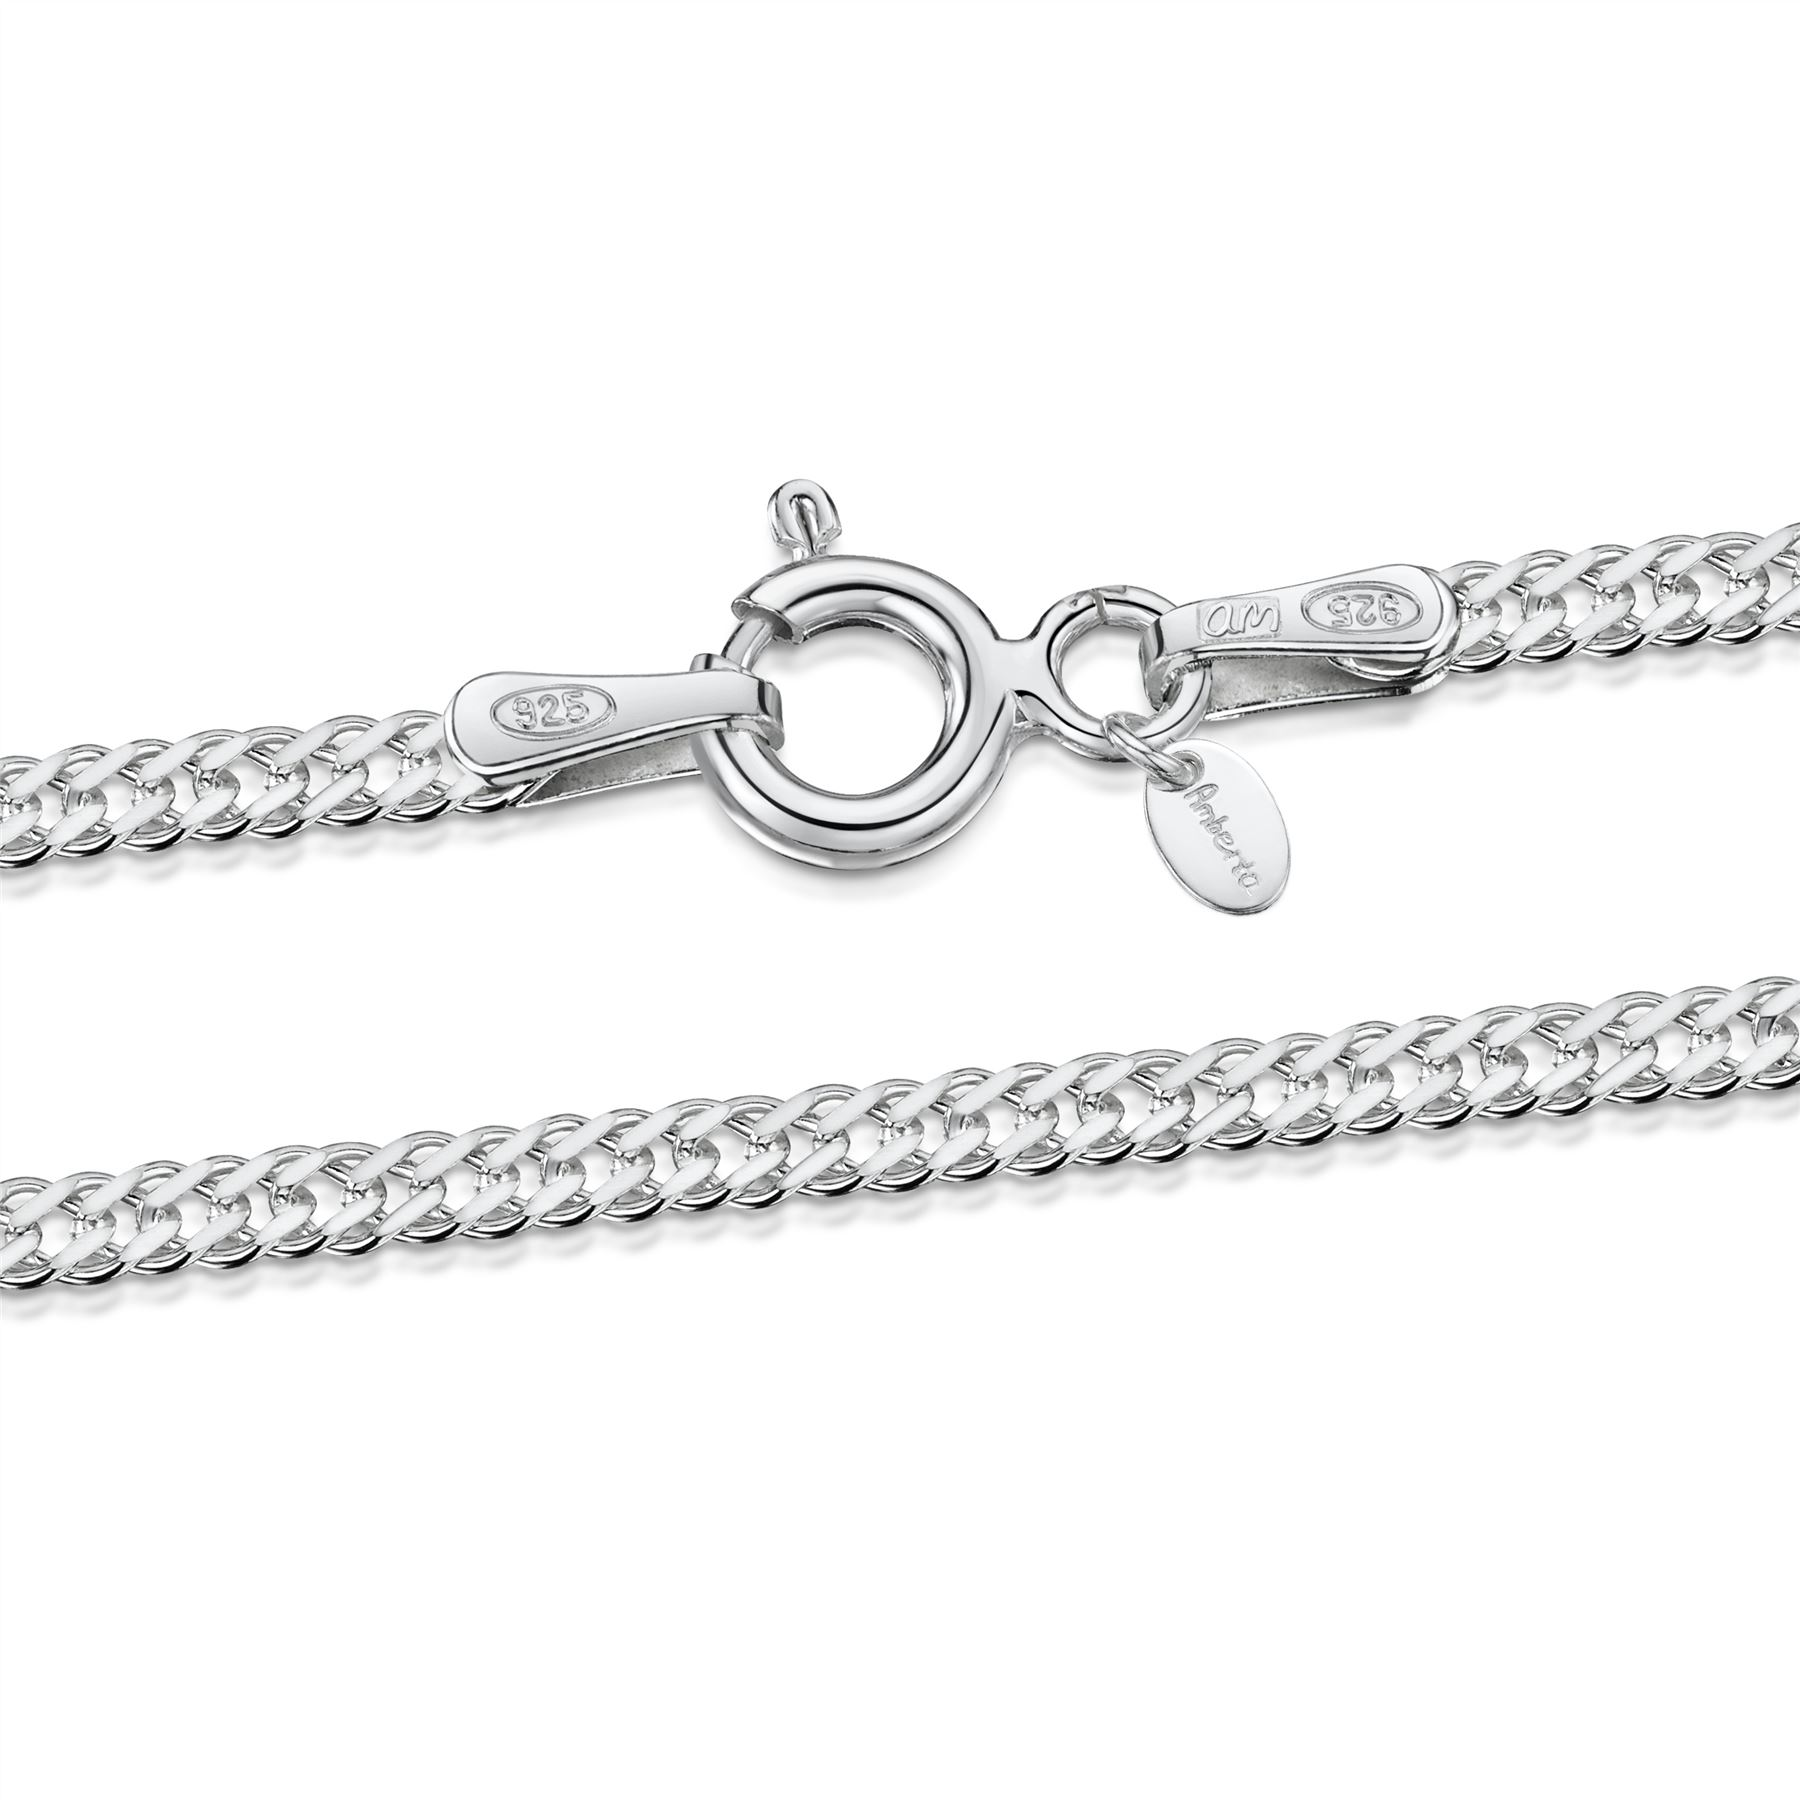 Amberta bijoux bracelet real 925 sterling silver chain for